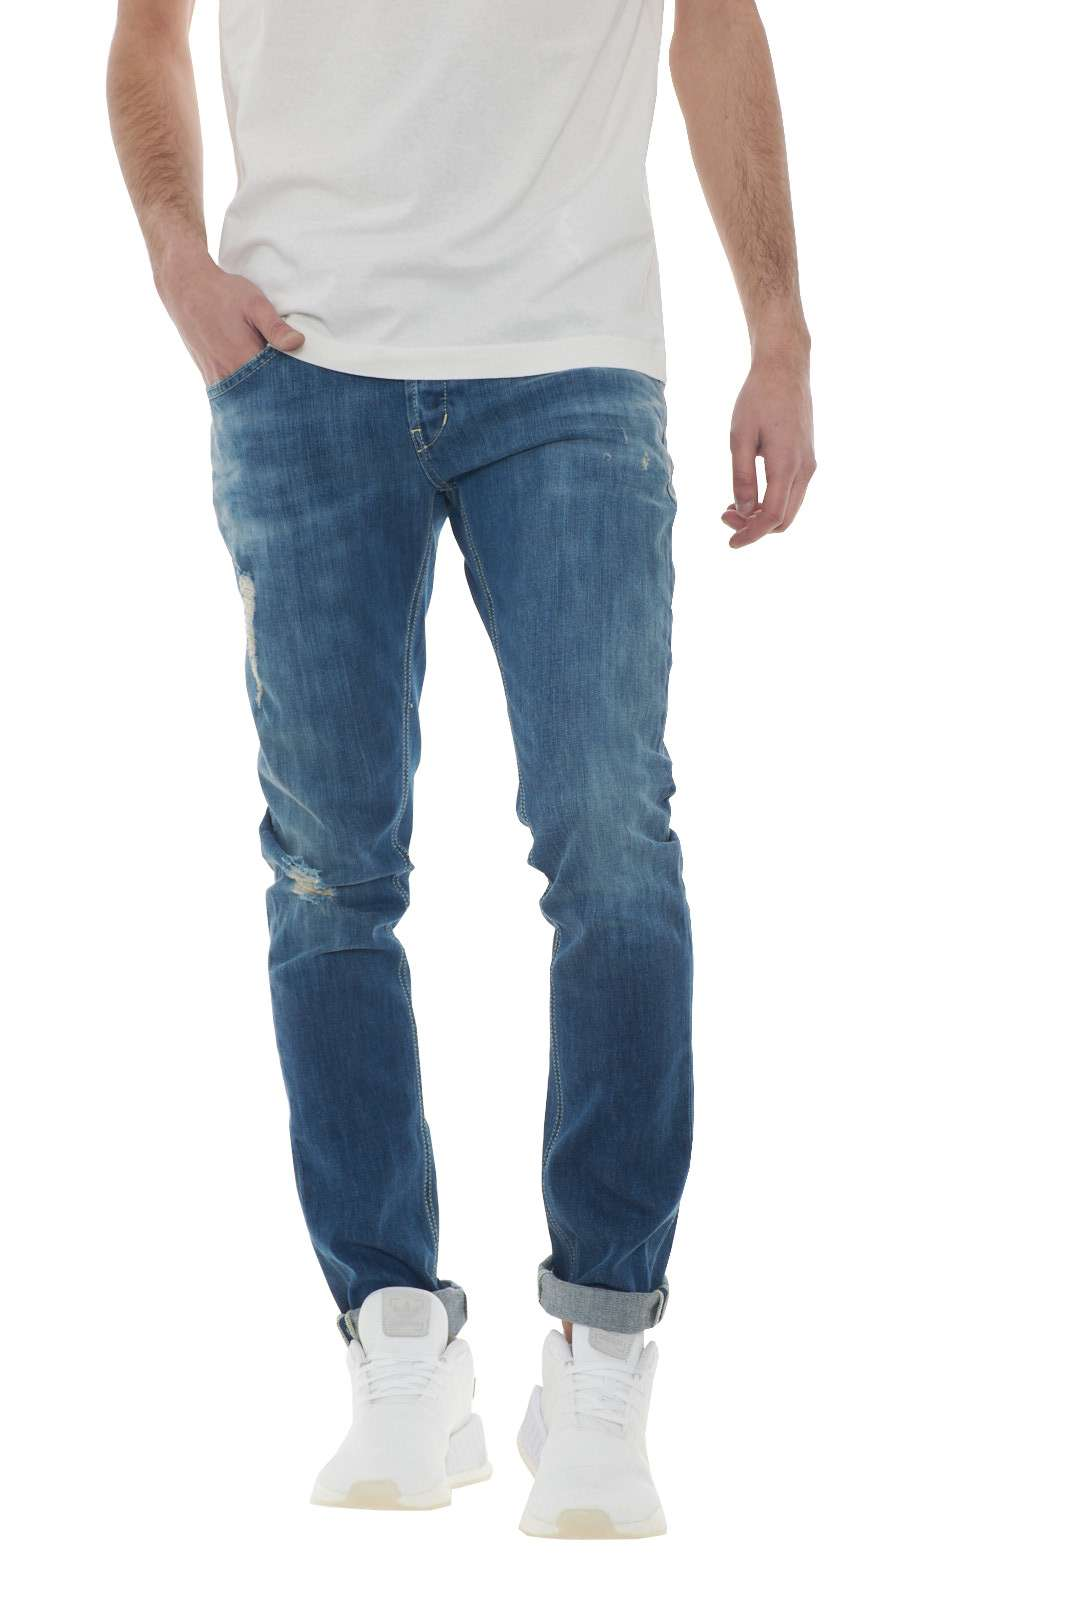 https://www.parmax.com/media/catalog/product/a/i/PE-outlet_parmax-denim-uomo-Dondup-UP424%20DS0257U-A.jpg